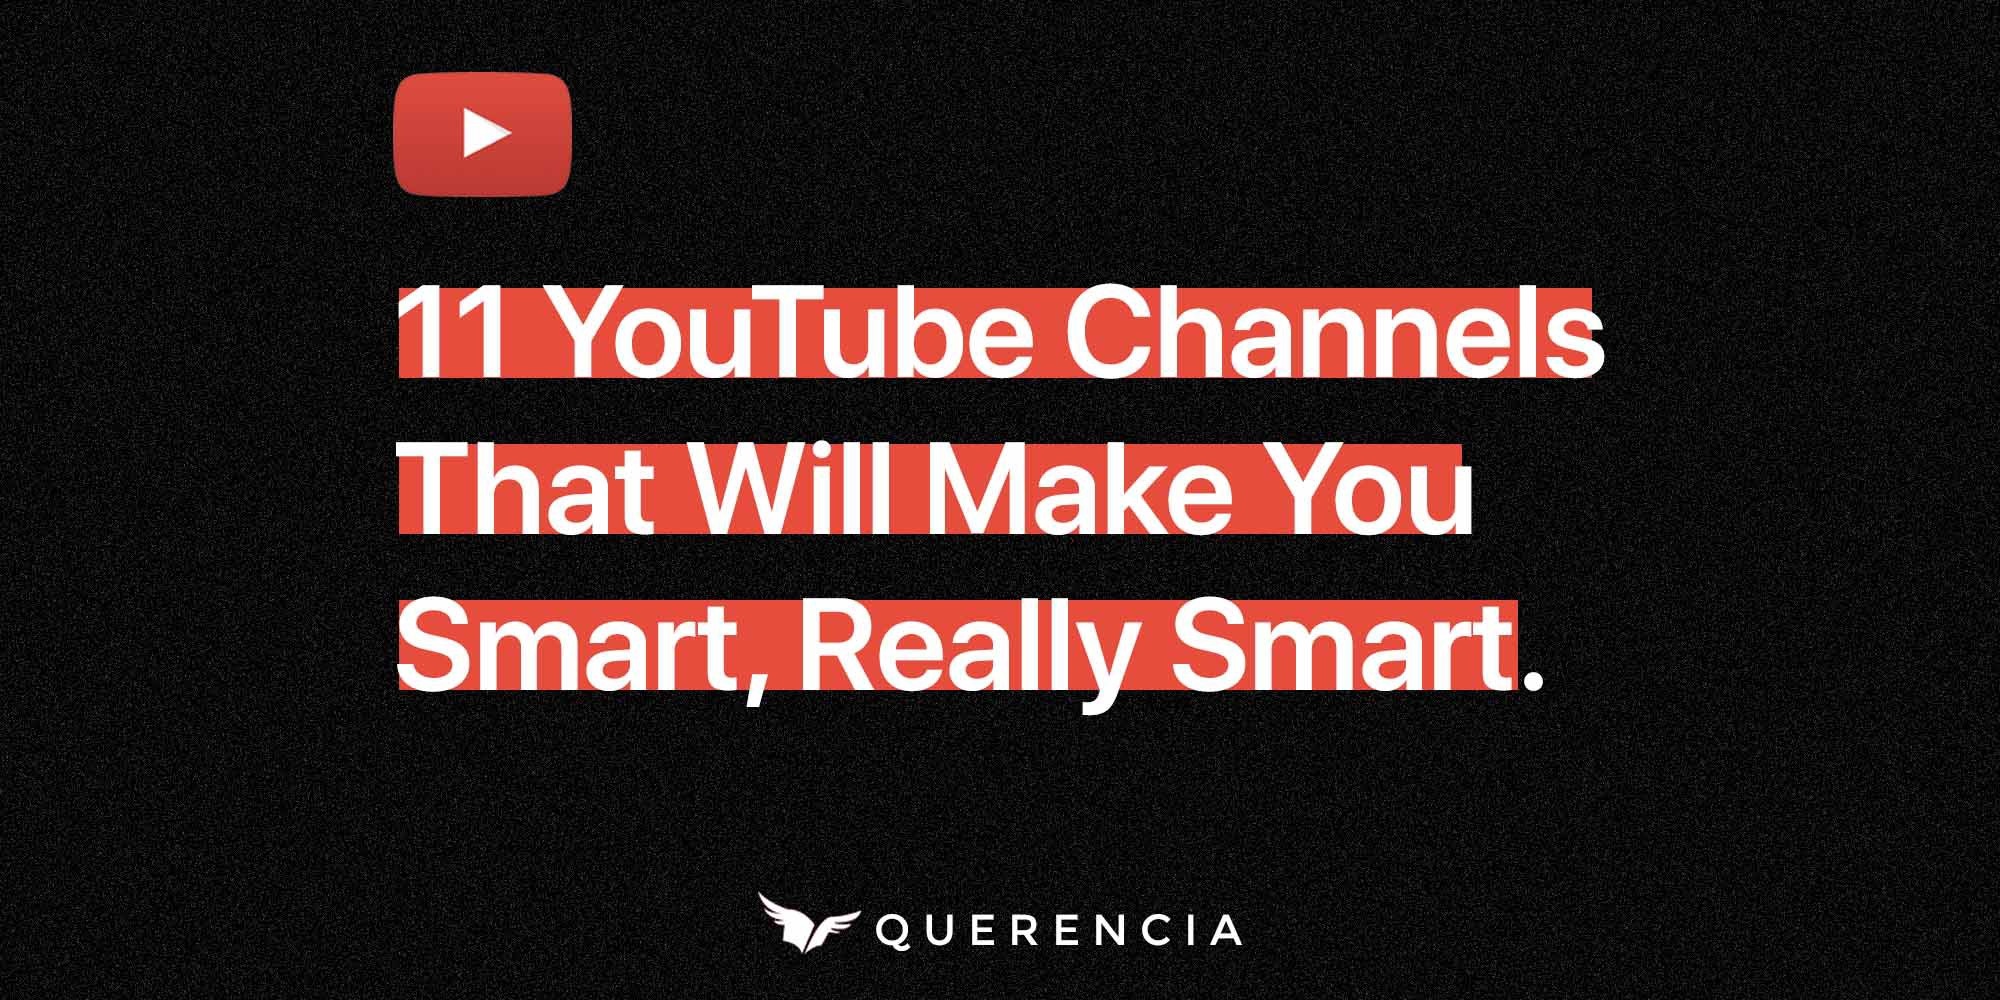 11 YouTube Channels That Will Make You Smart, Really Smart